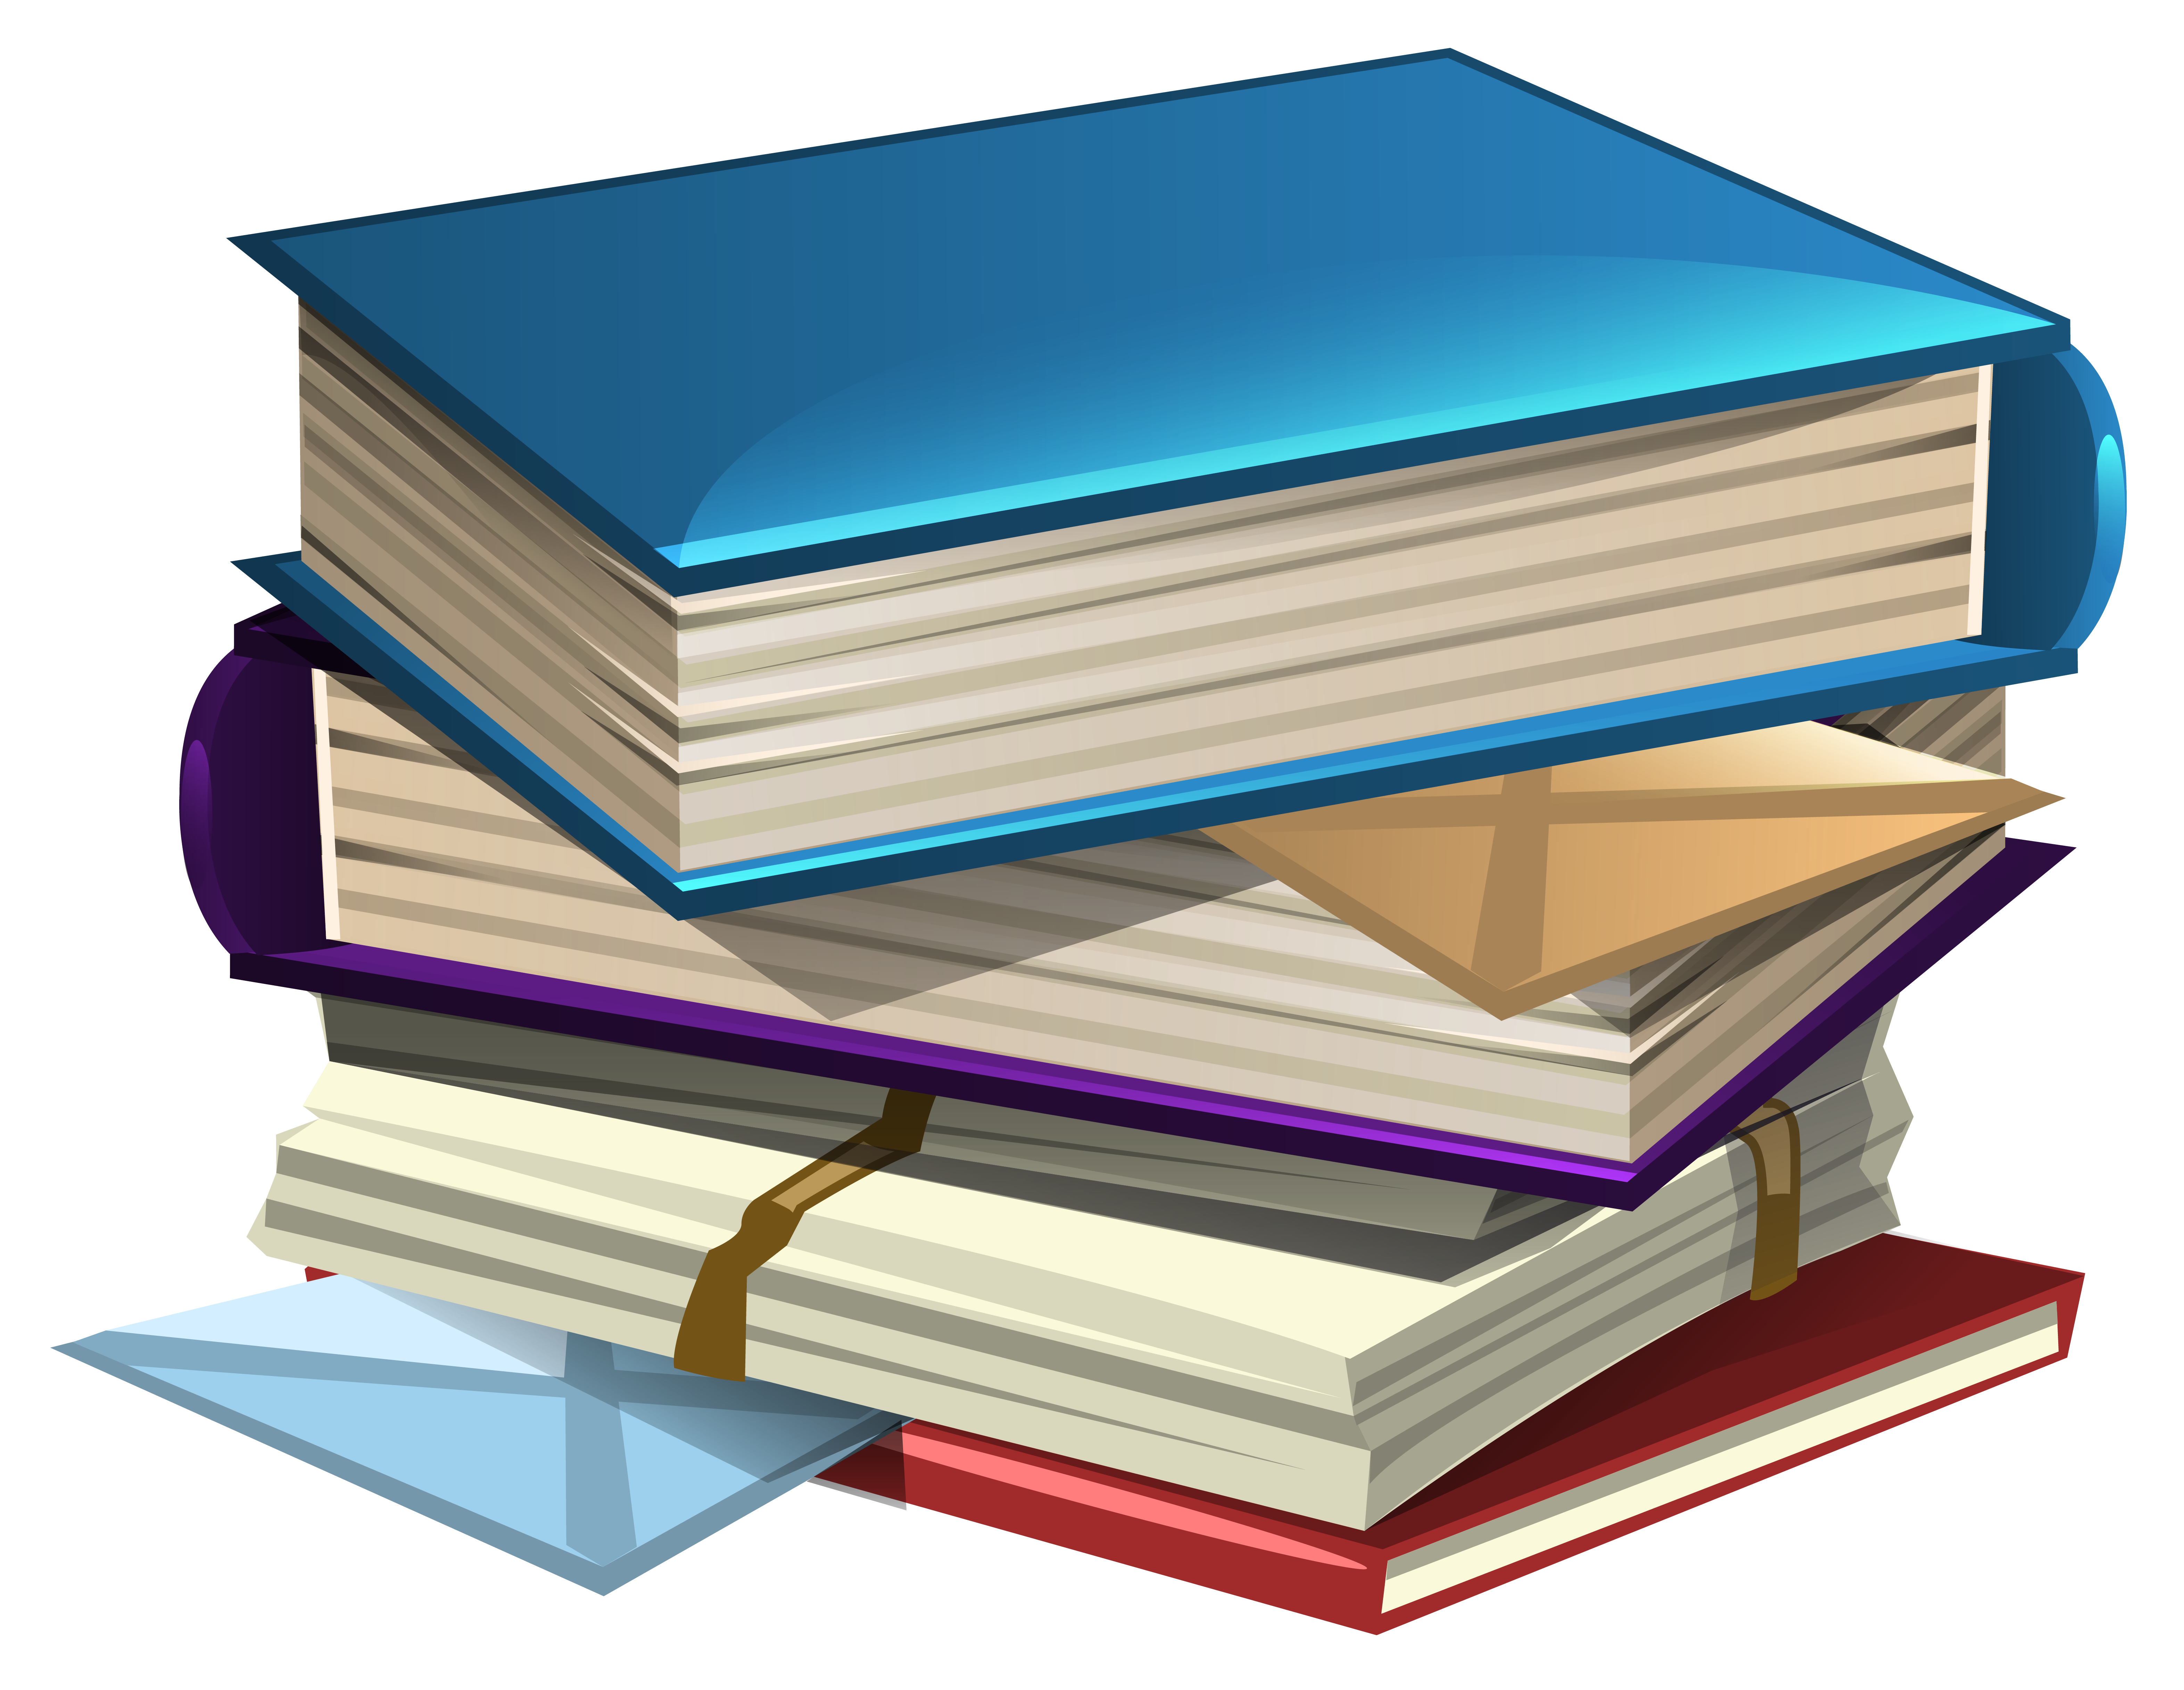 School books image gallery. Textbook clipart transparent background